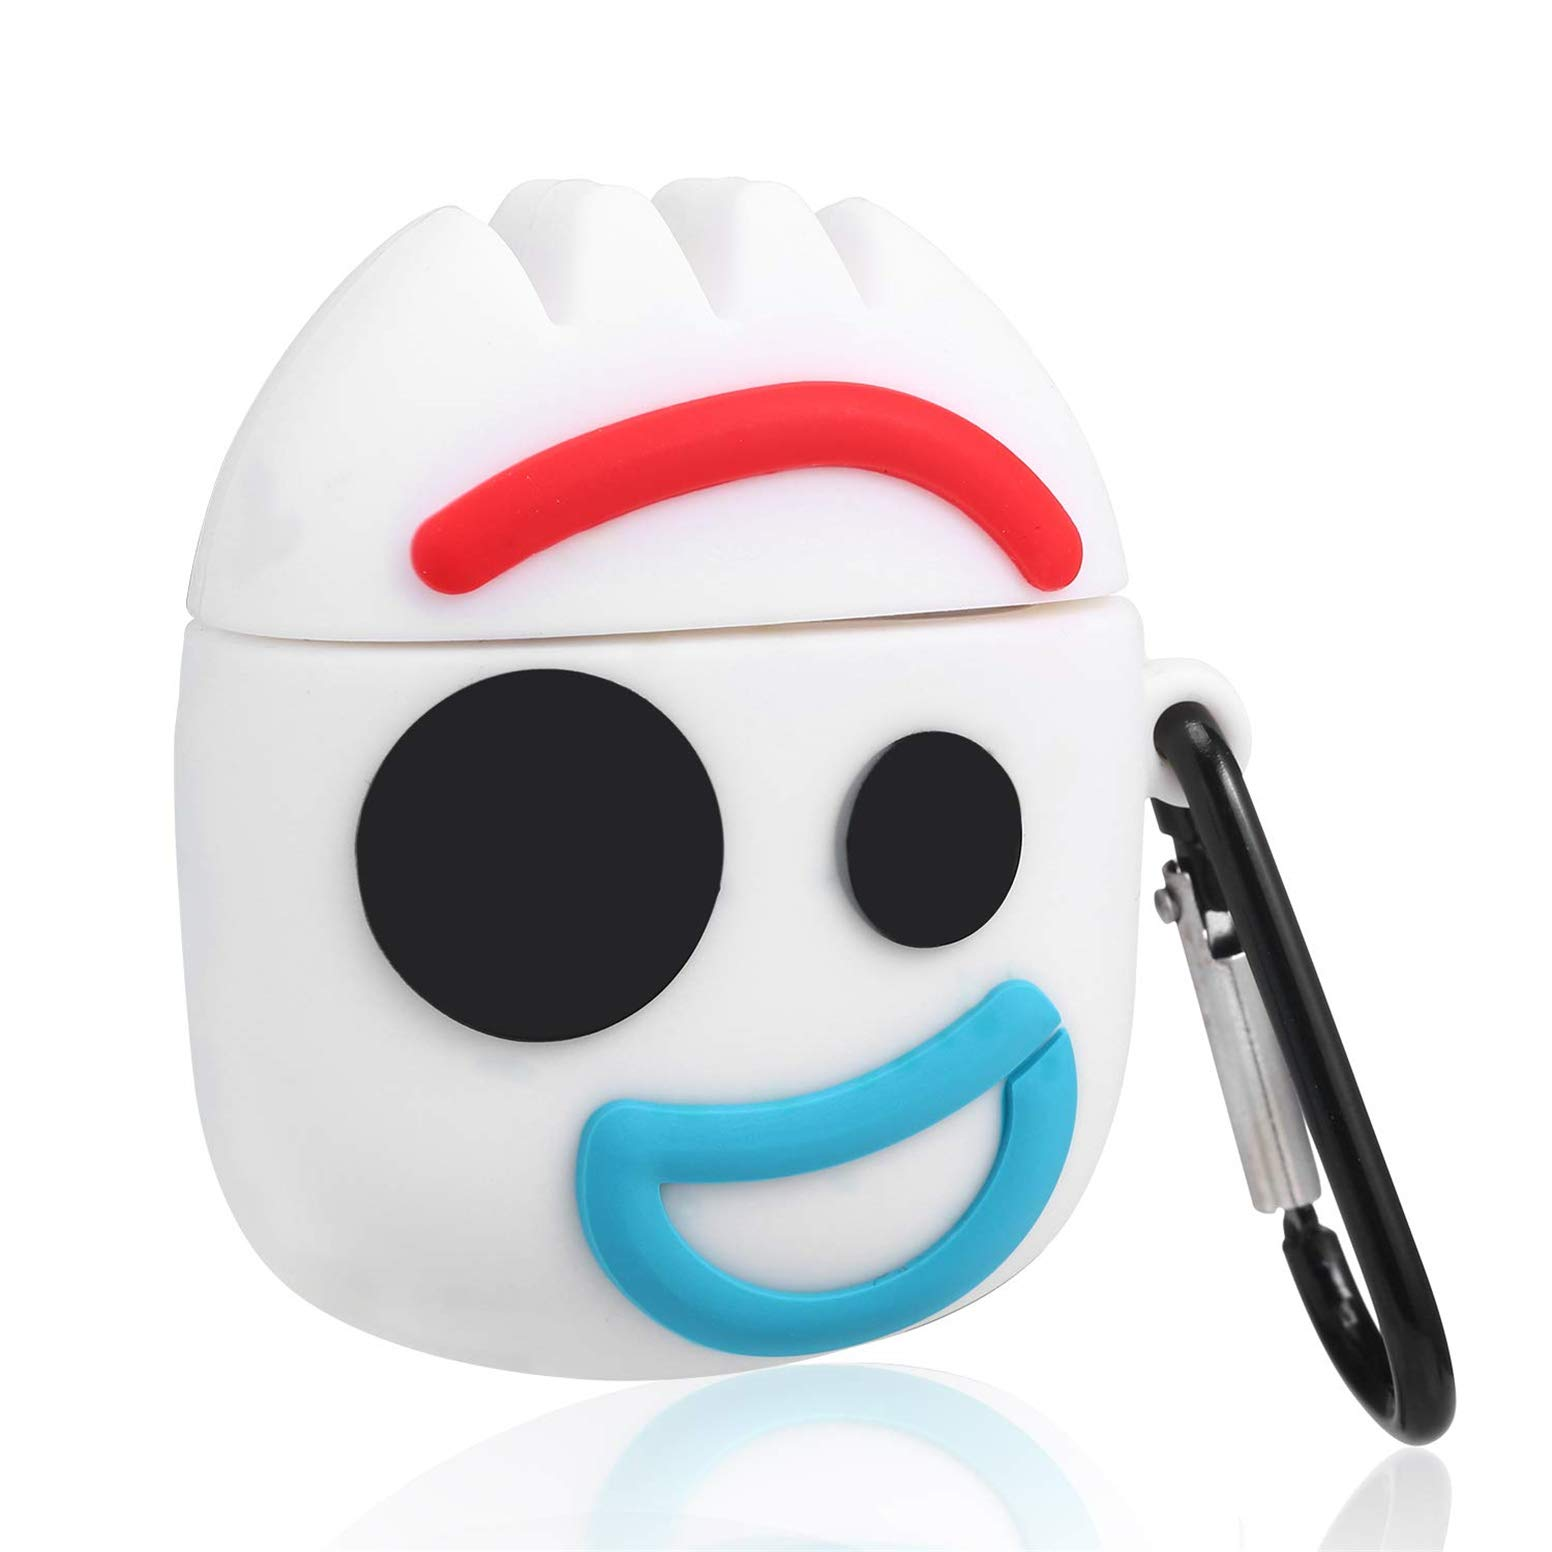 Oqplog for AirPods 2&1 Case, Protective Soft Silicone Cute Cartoon Fun Character Cover for Girls Teens Kids Boys Air Pods, Funny Cool Shockproof Design Skin Accessories Cases for Airpod 1/2 - Mr. Fork